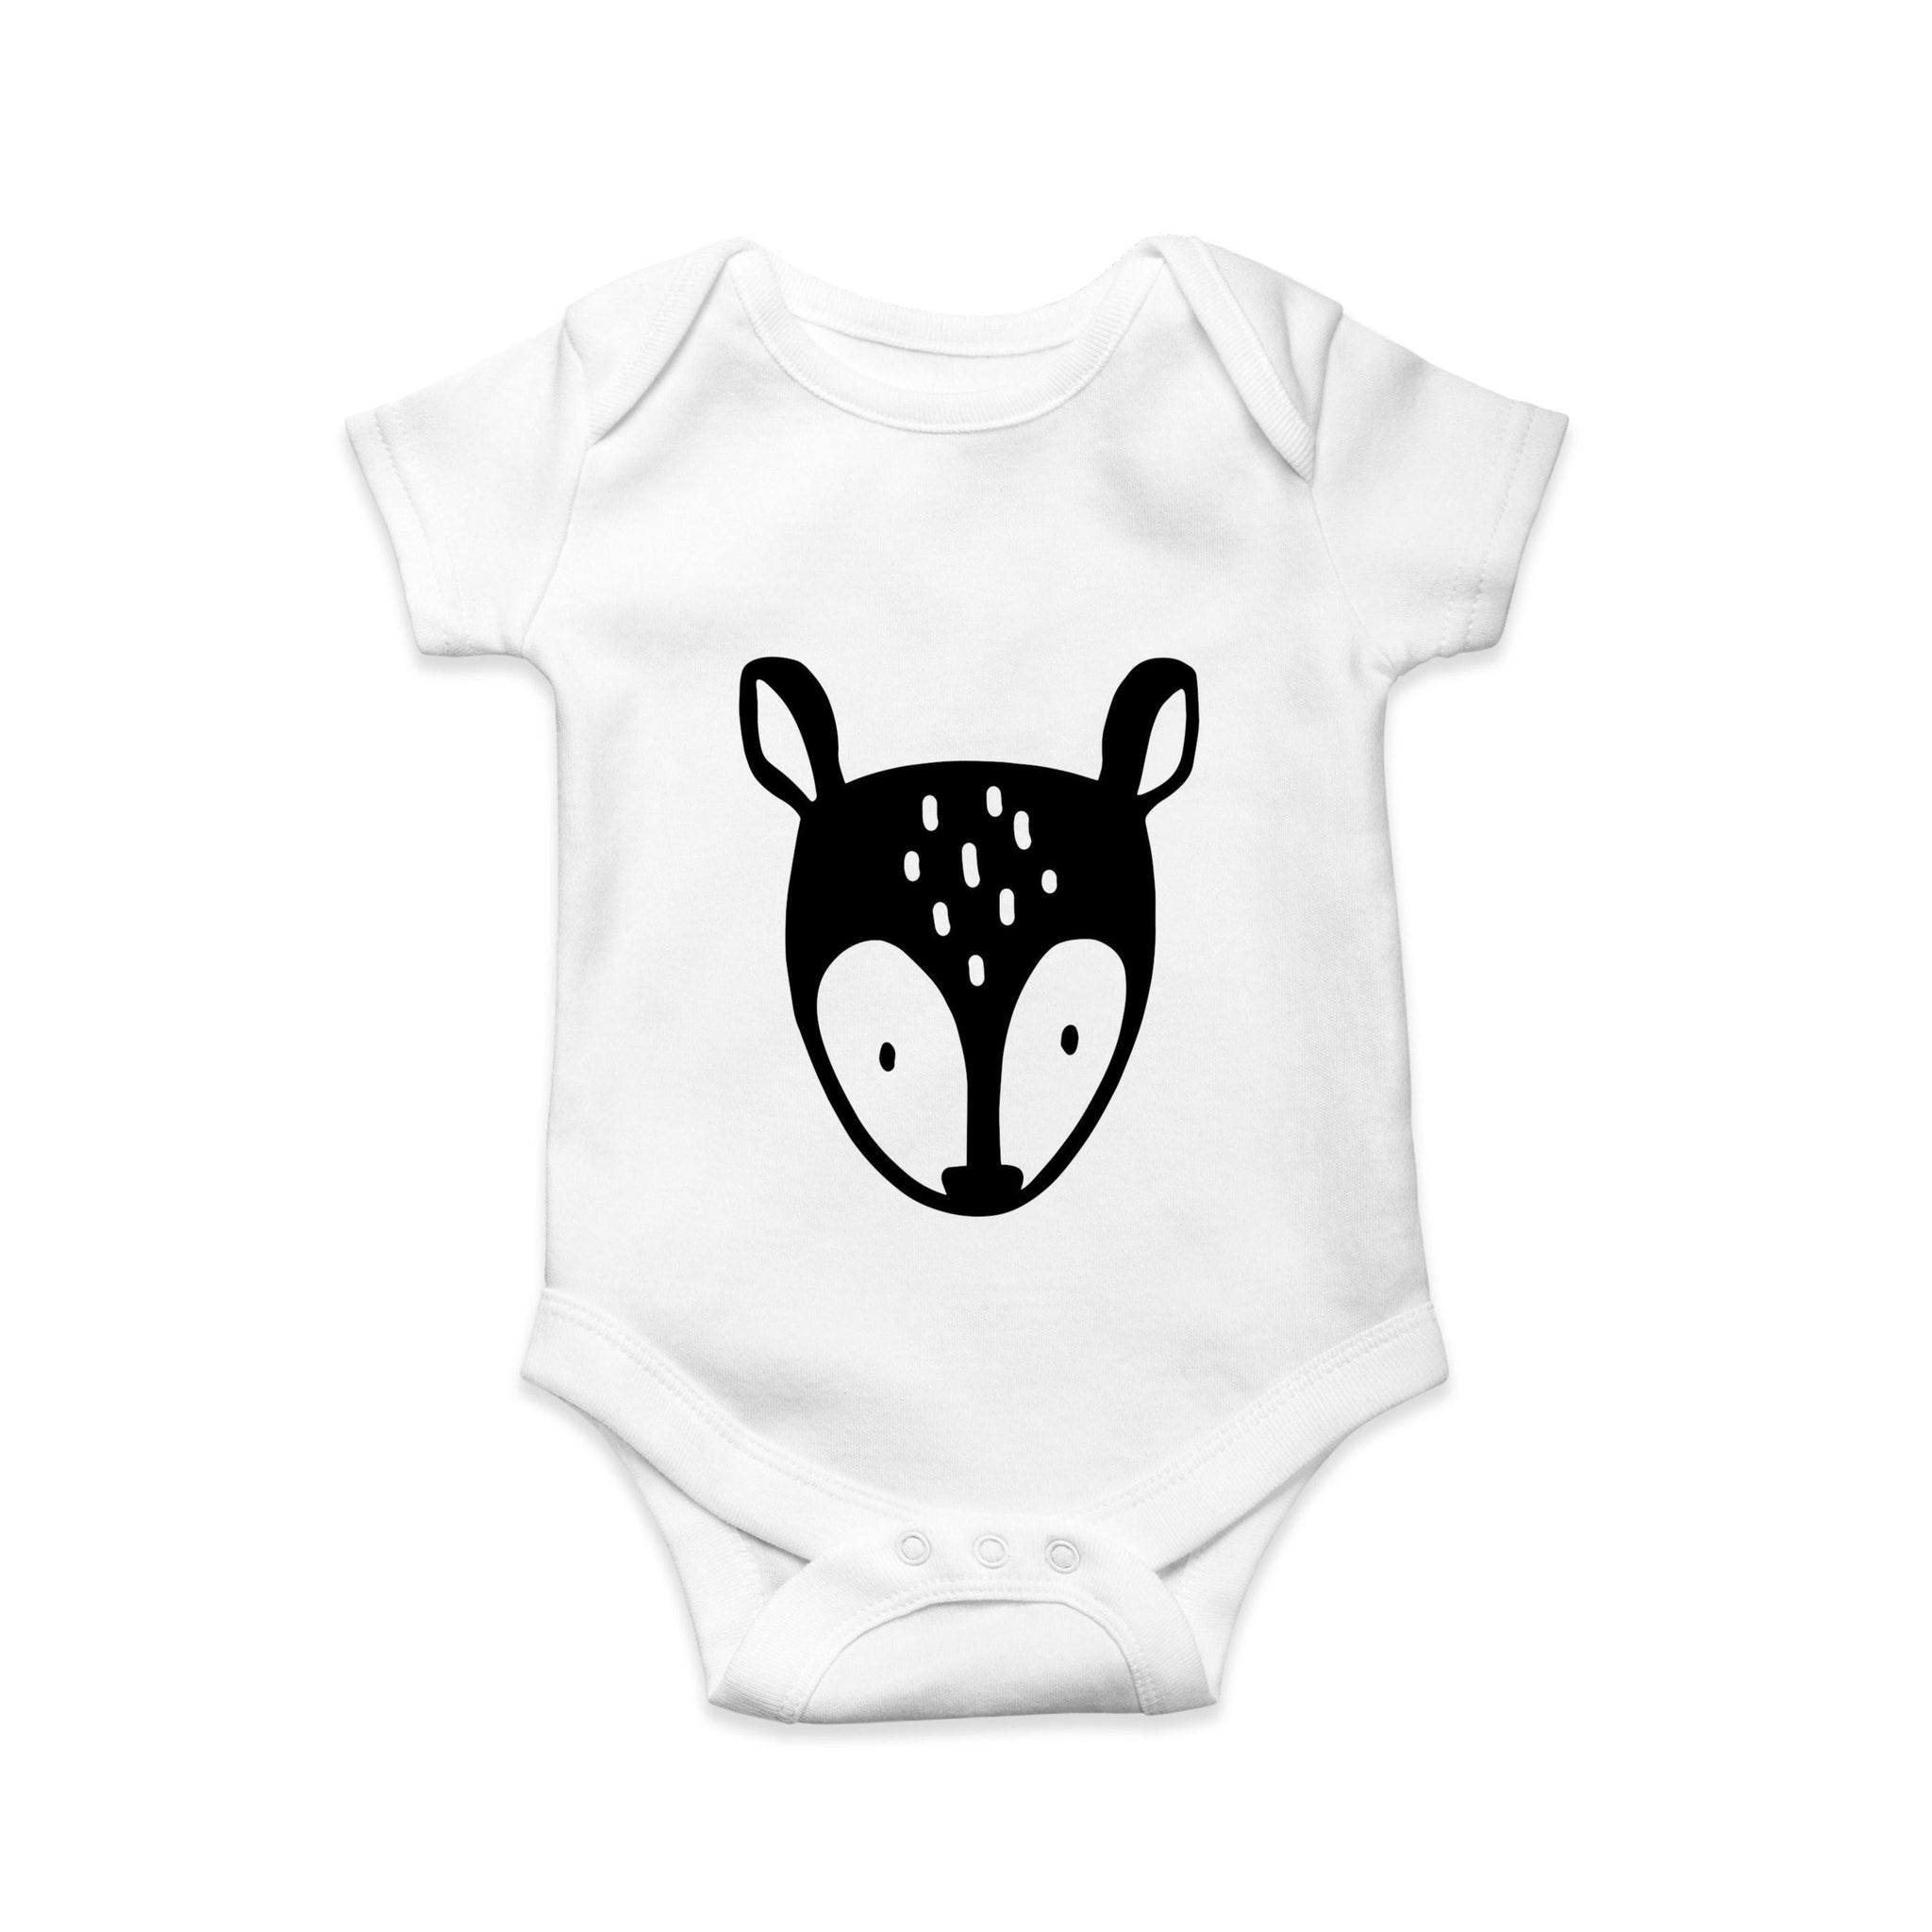 Mono Fawn baby body suit - Sew Tilley